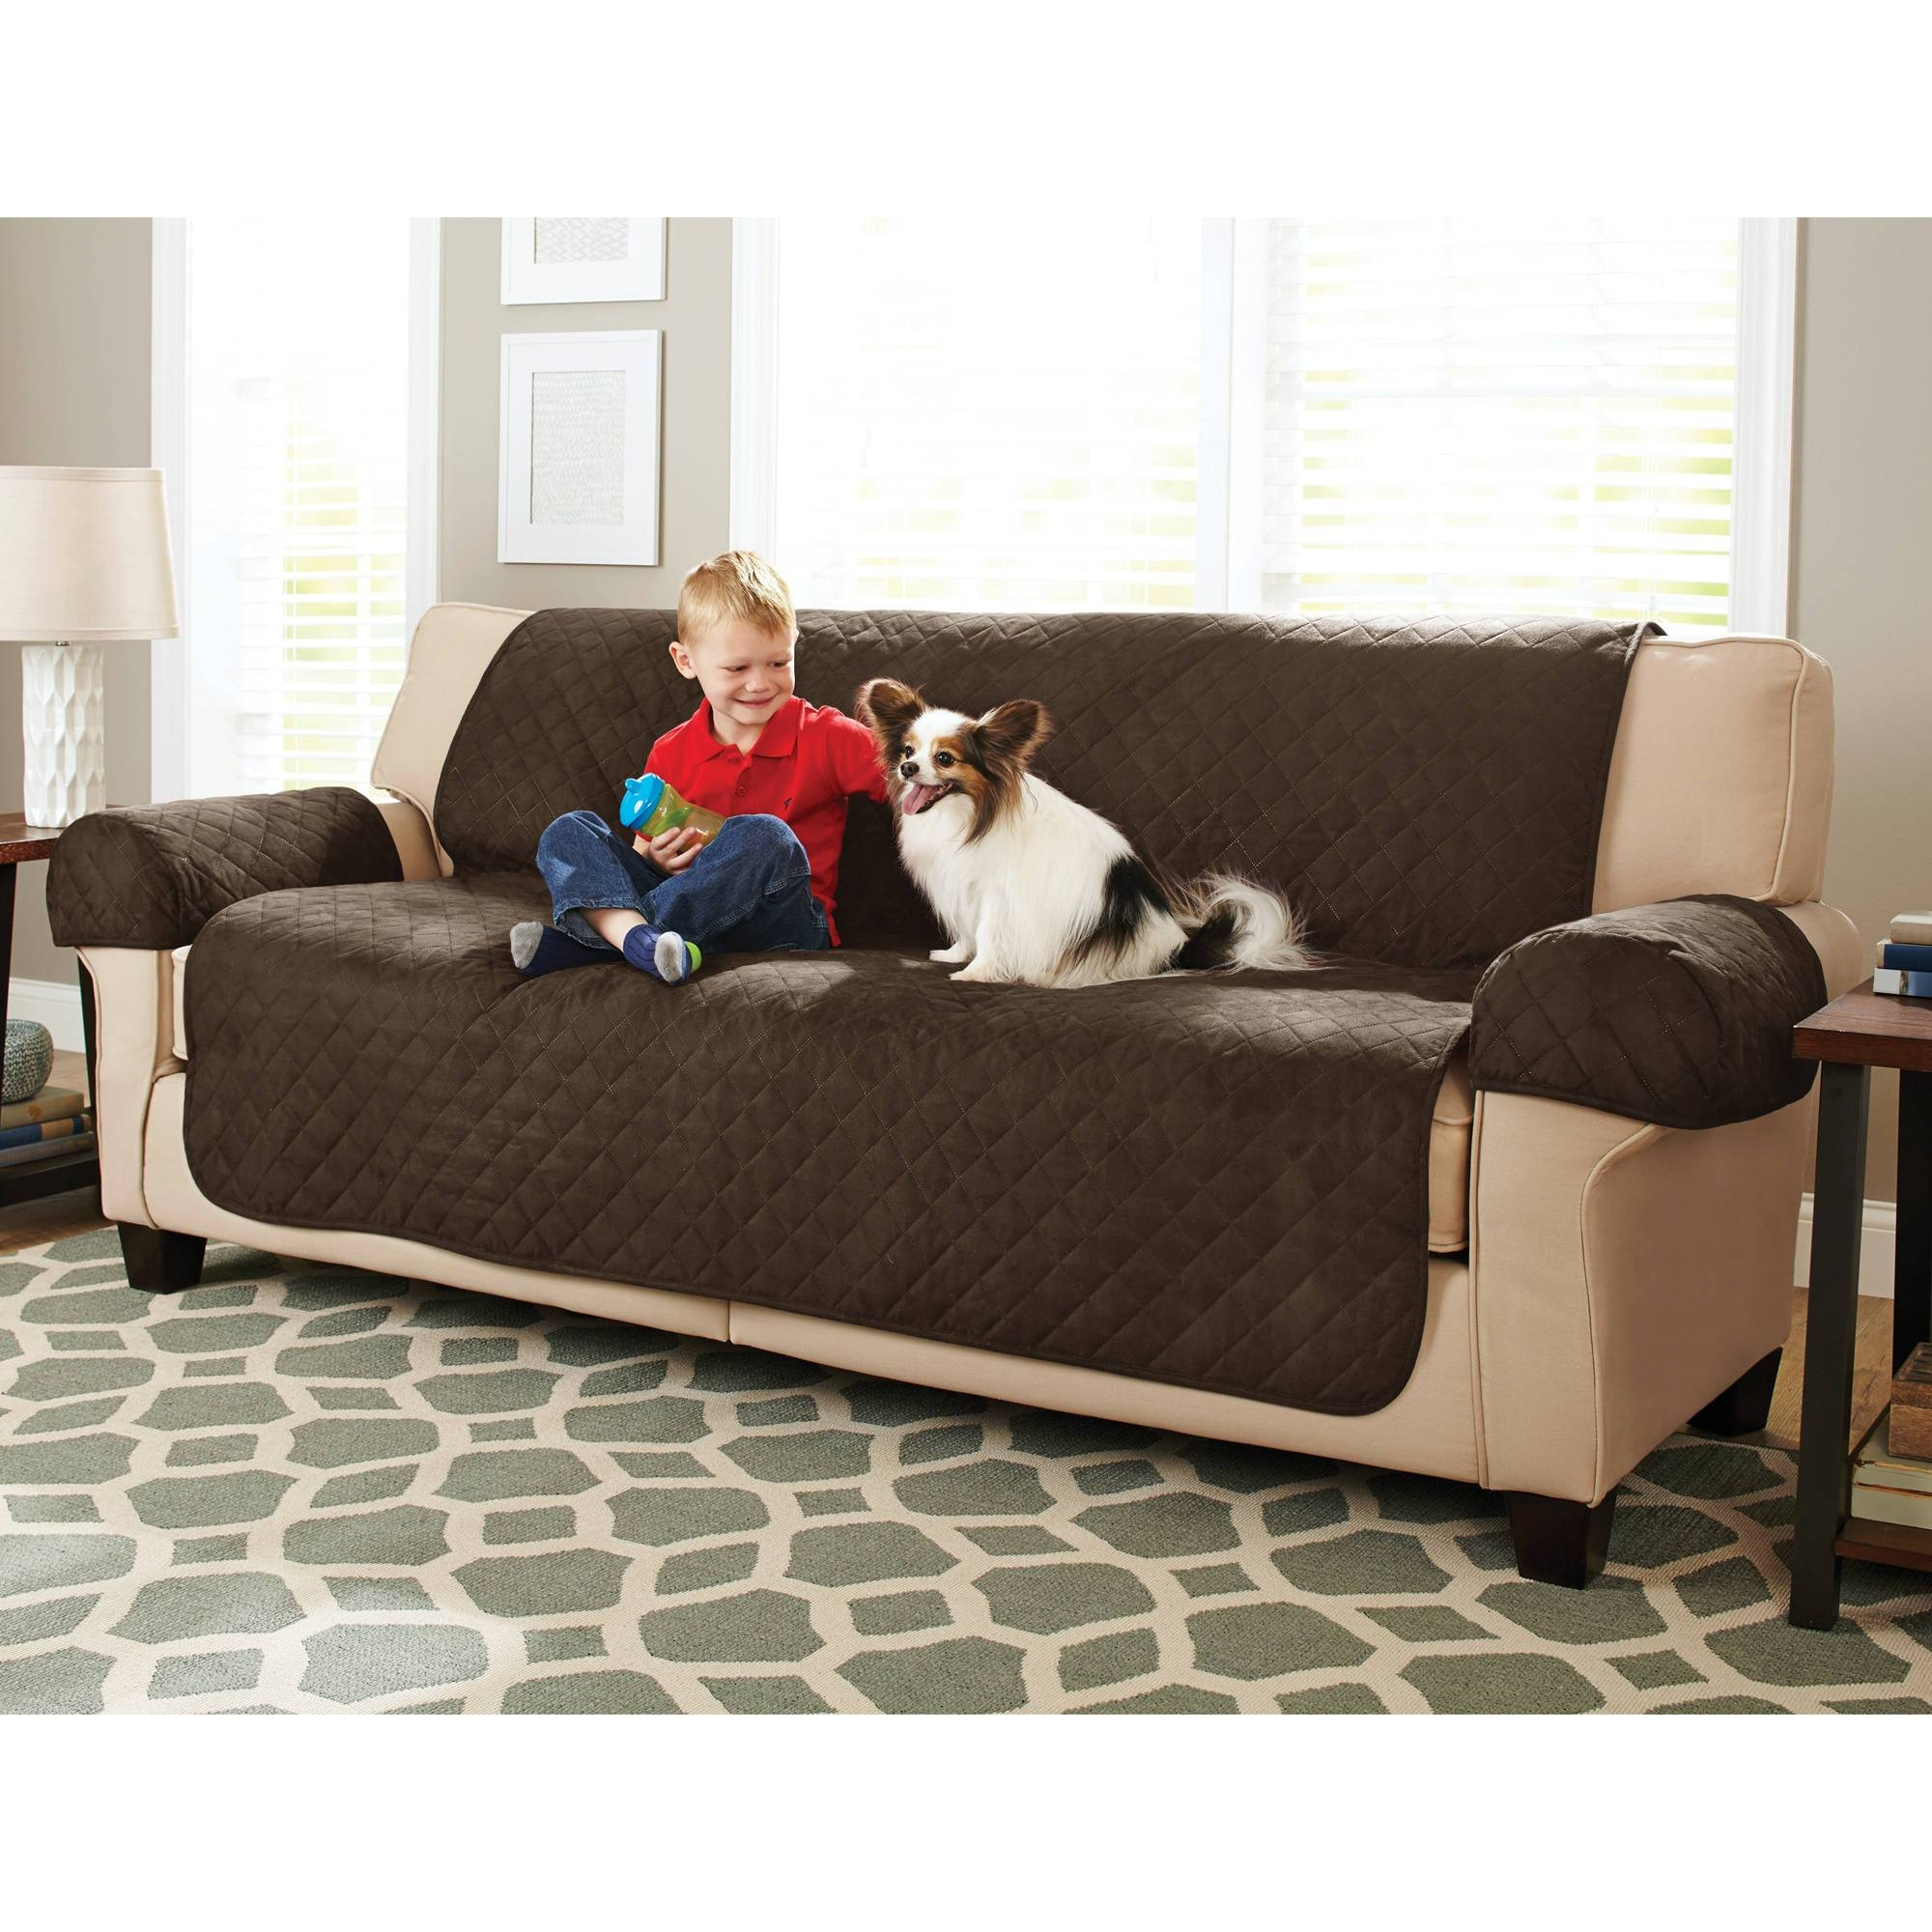 Maytex Stretch 2-Piece Sofa Slipcover - Walmart intended for Black Sofa Slipcovers (Image 8 of 15)